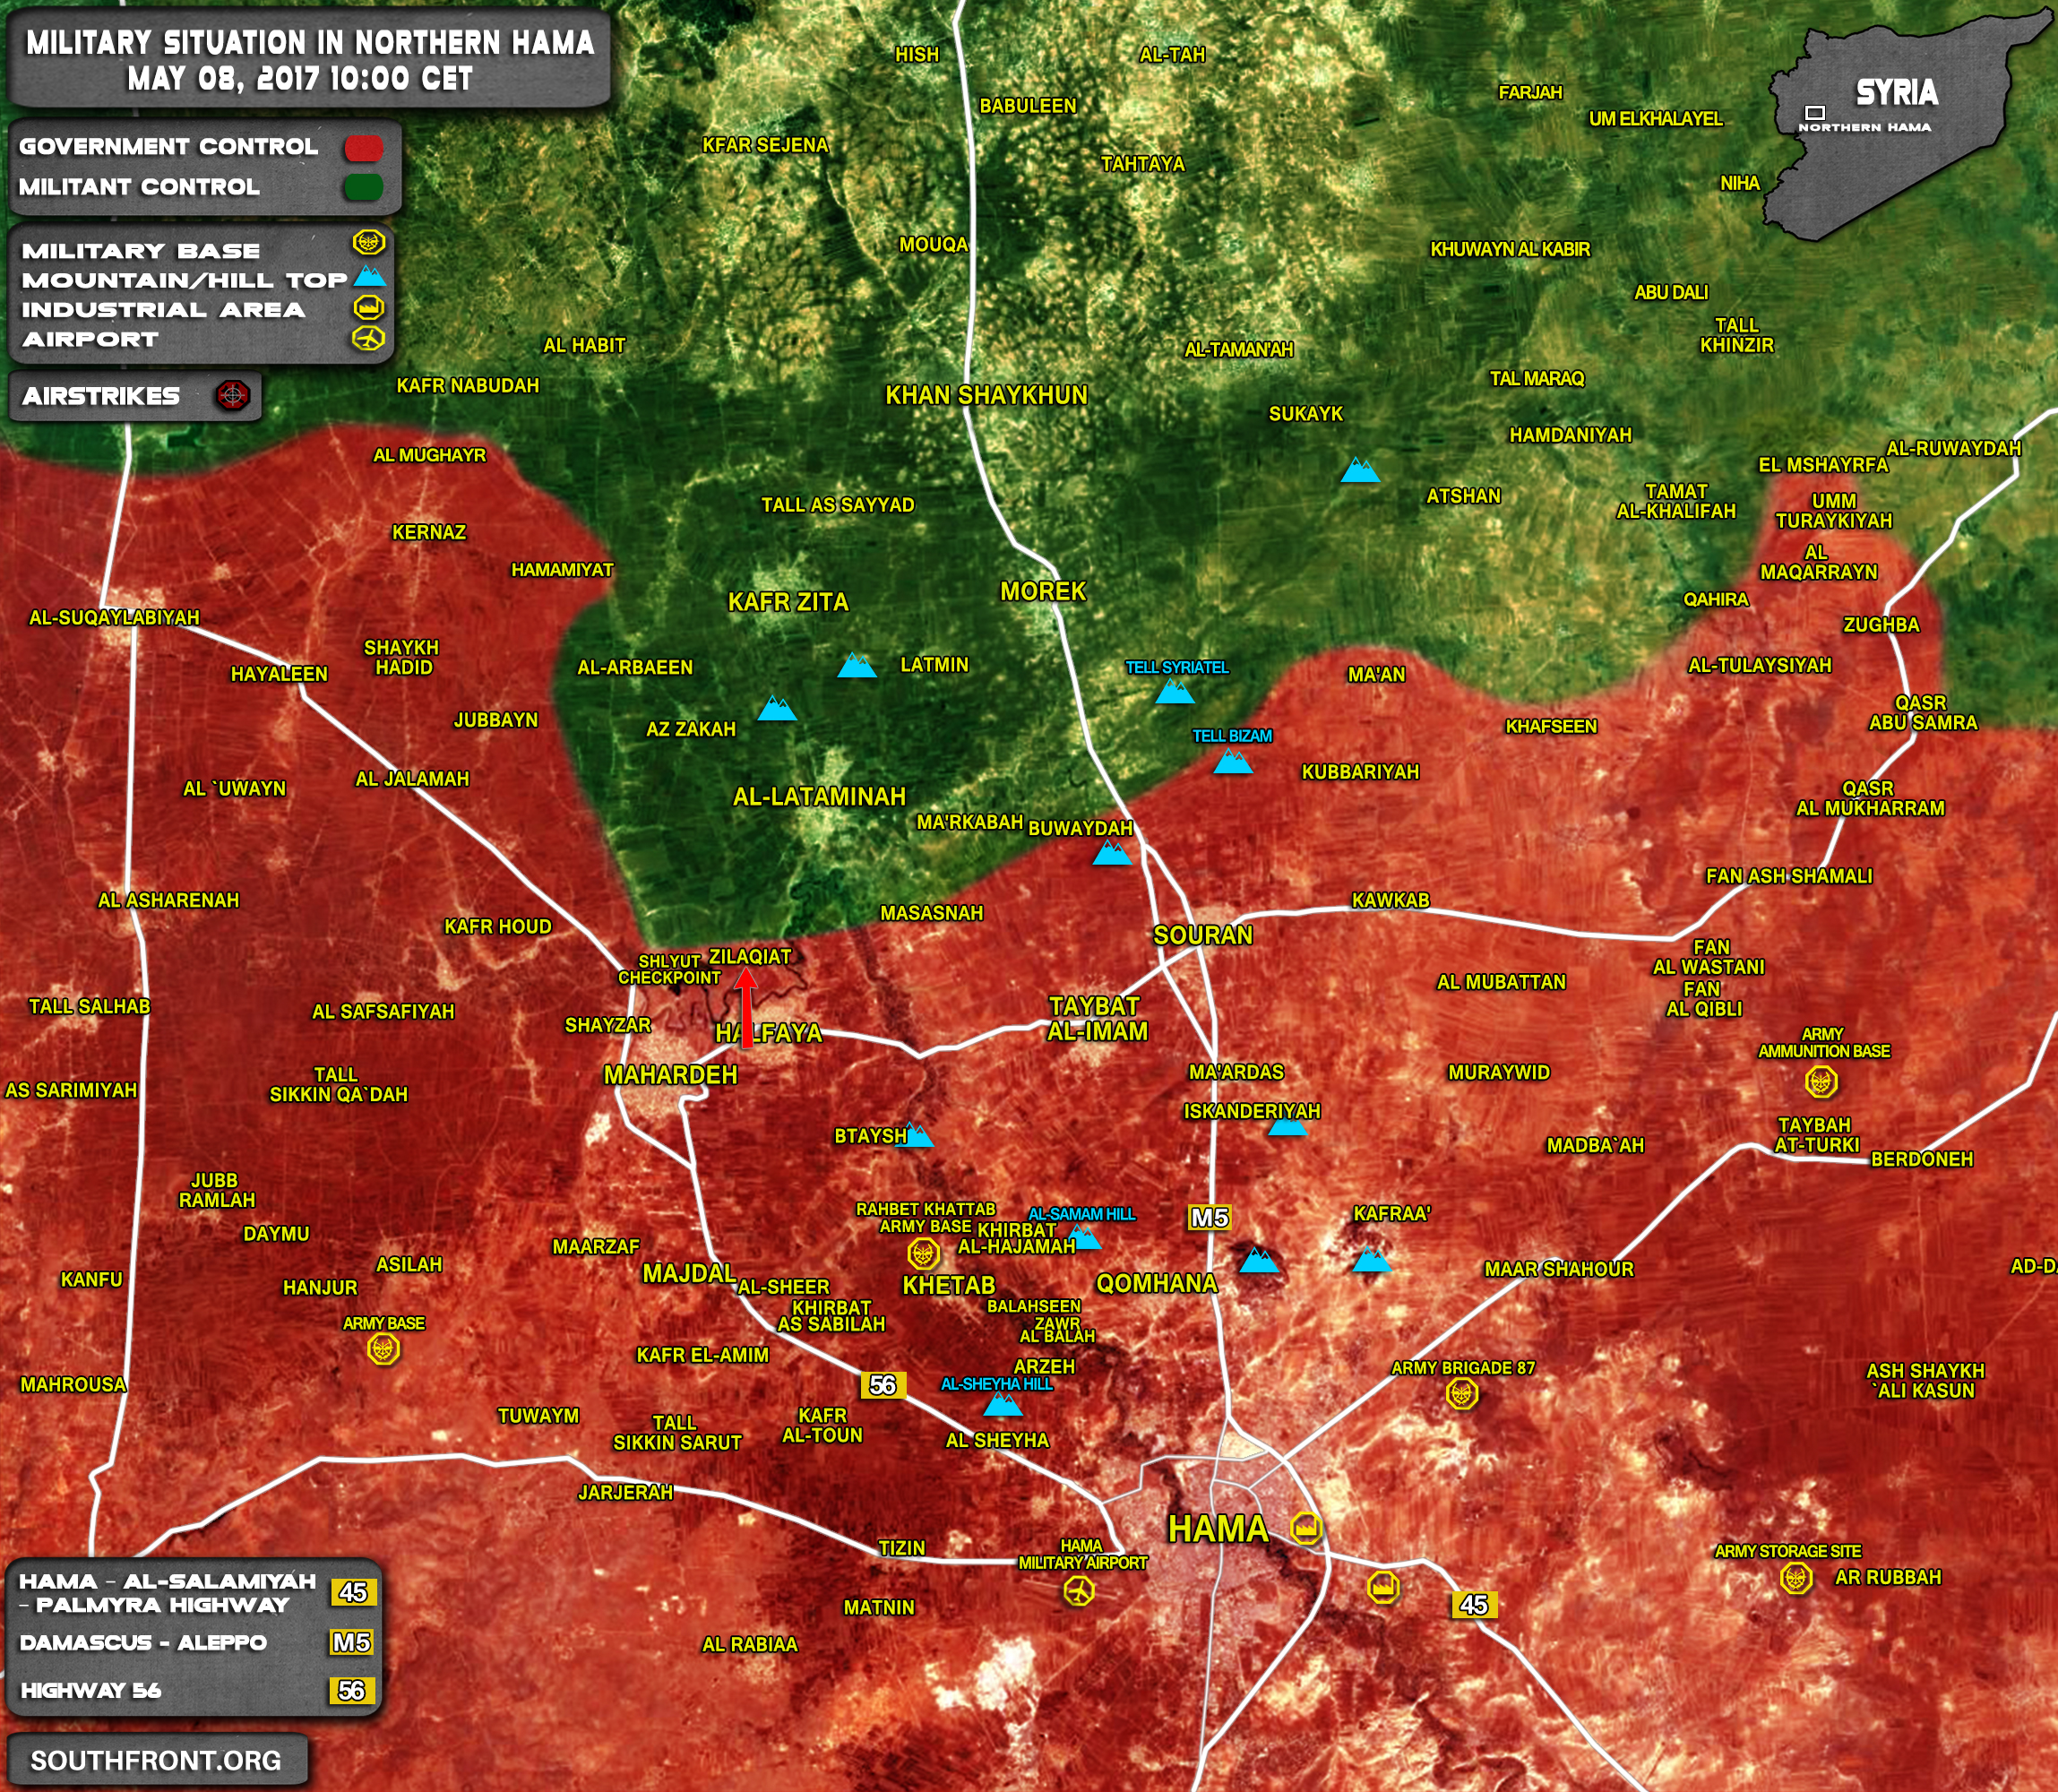 Military Situation In Northern Hama On May 8, 2017 (Map Update)